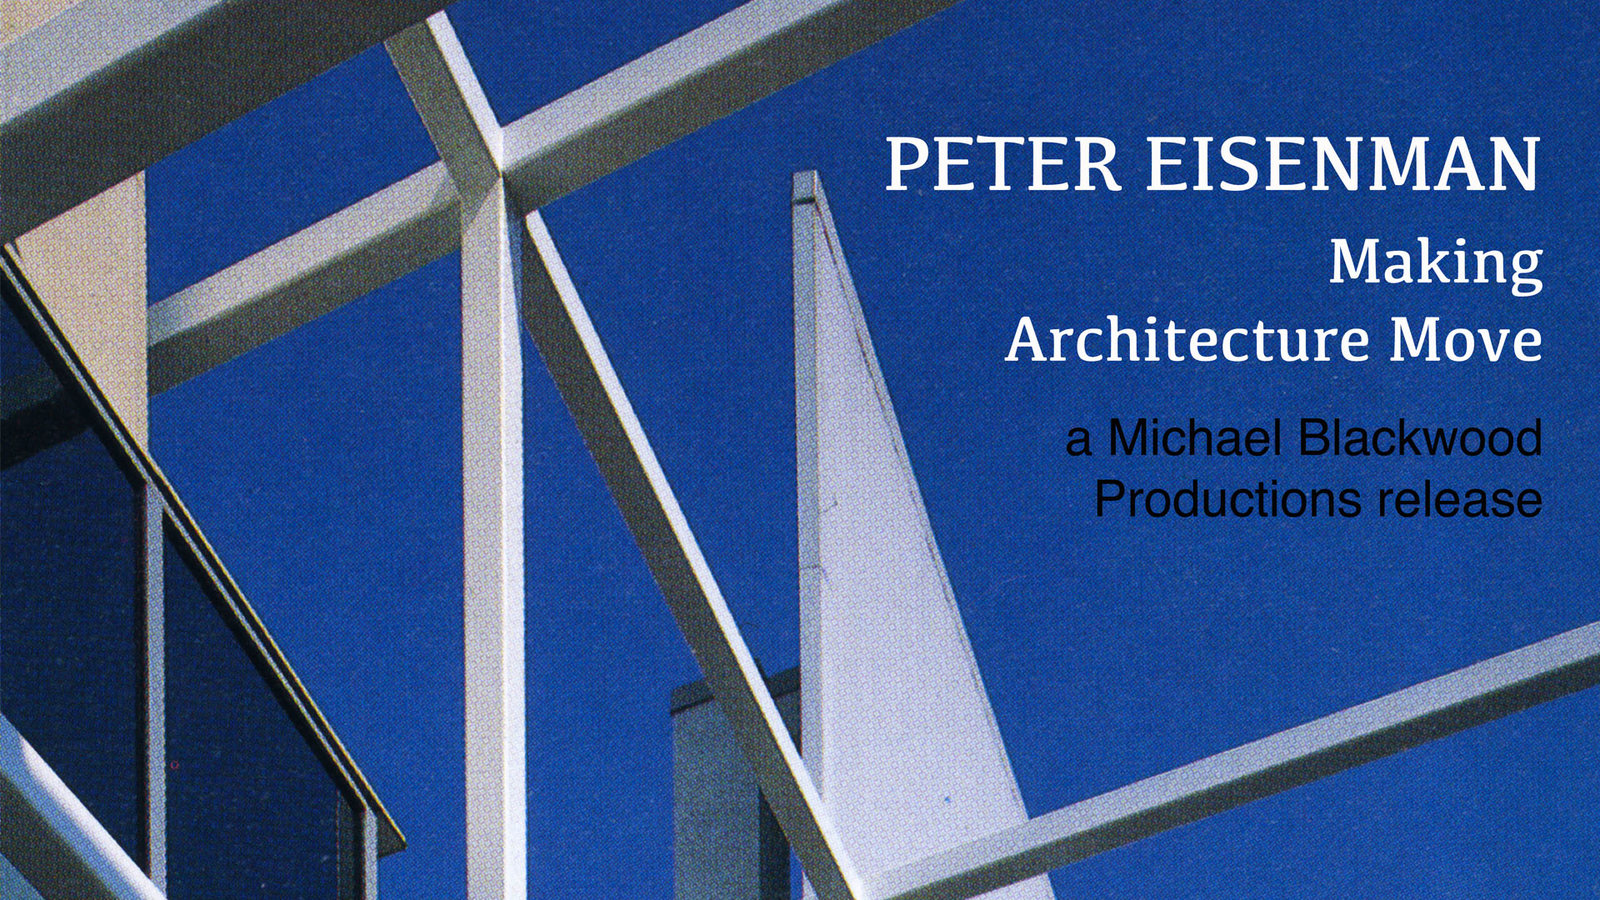 Peter Eisenman - Making Architecture Move